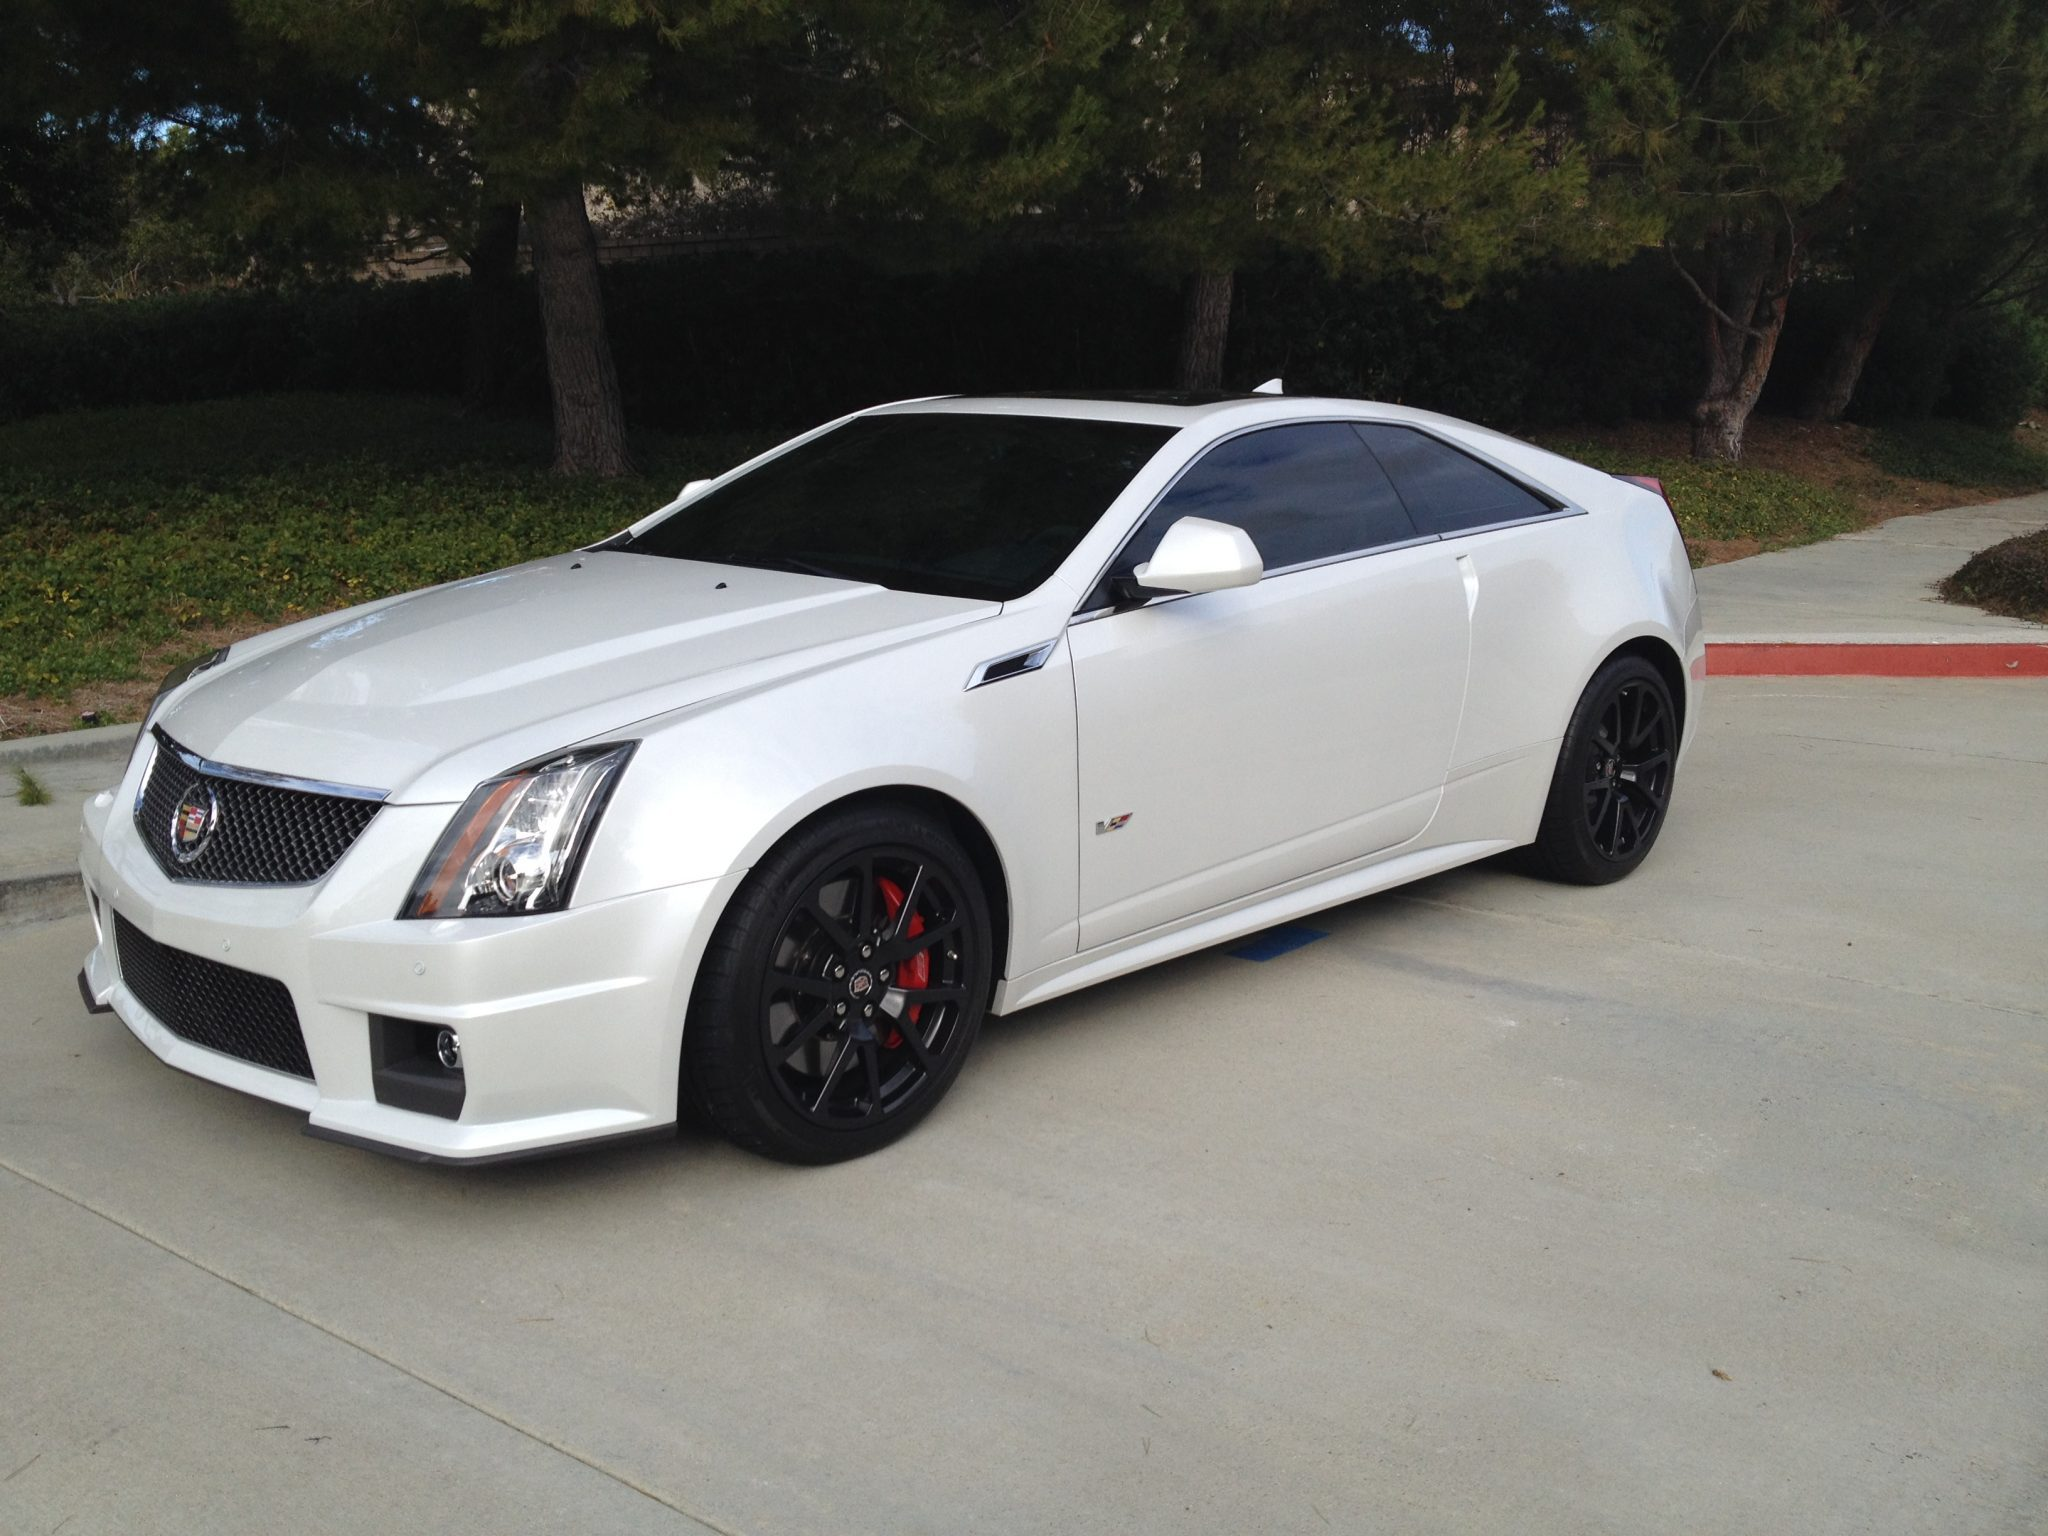 2011-cadillac-cts-v-coupe-crystal-white-tricoat-2.jpg